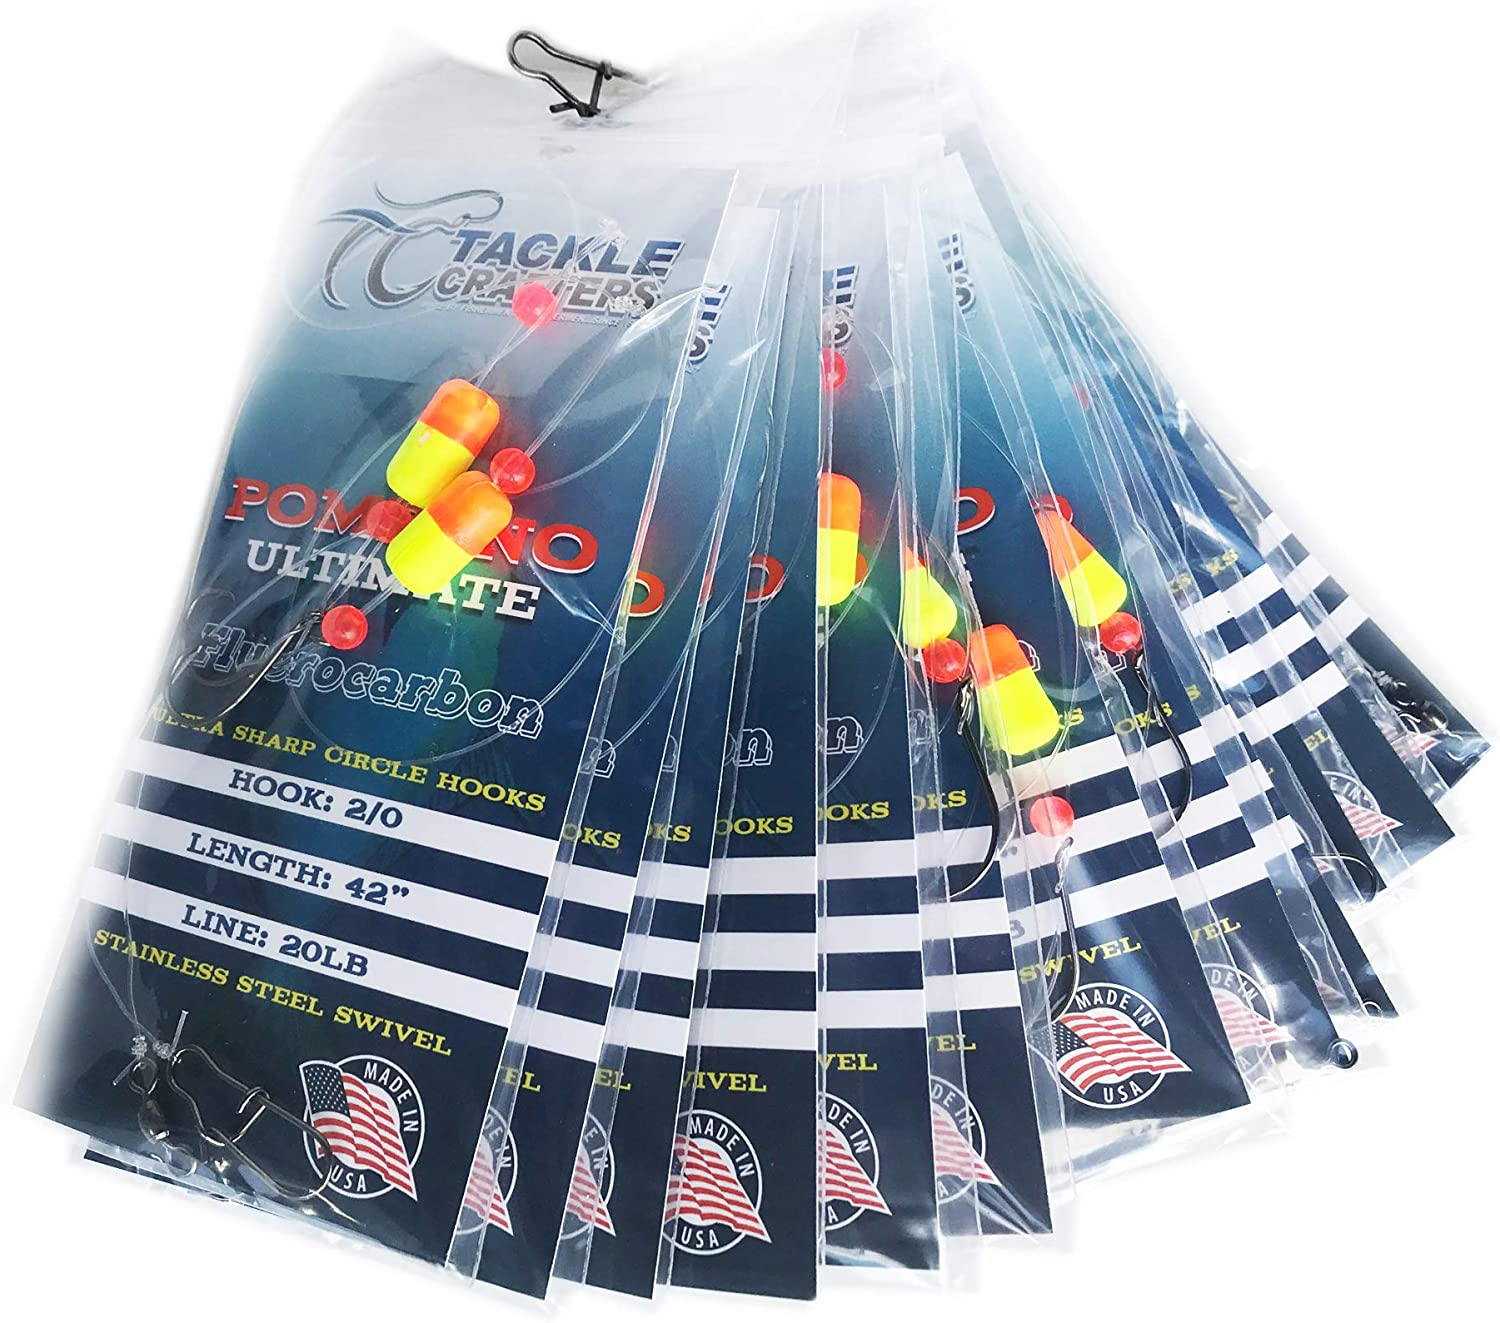 12 Pack Tackle Crafters Pompano Ultimate Surf Fishing Rig Fluorocarbon Fishing Leaders Circle Hook